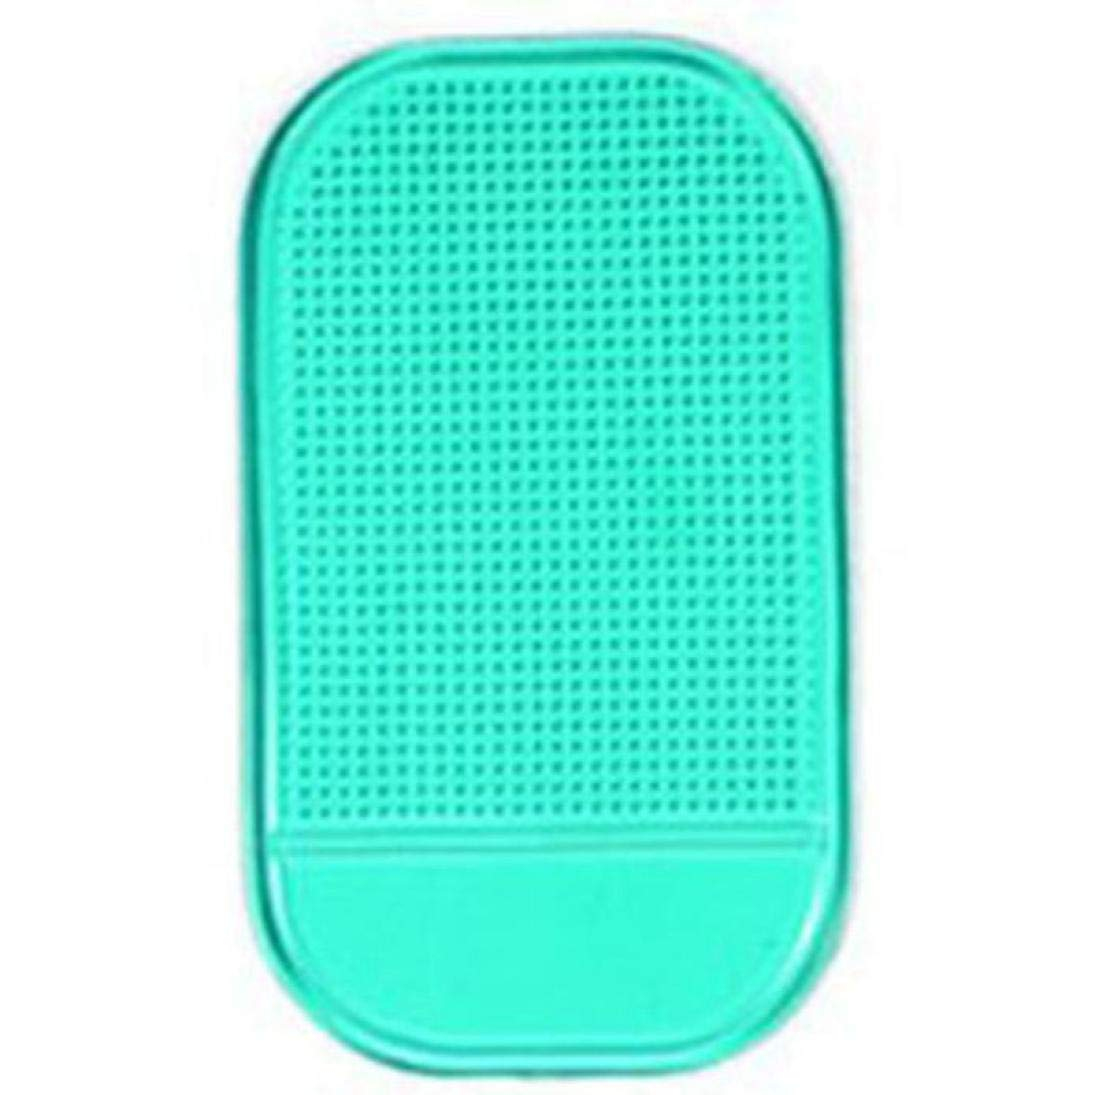 LiPing Car Magic Anti-Slip Dashboard Sticky Pad Non-slip Mat Holder Stands for IPhone 6 Plus/7/8/X 3.5-6.0inch Phone (1PC, Green)